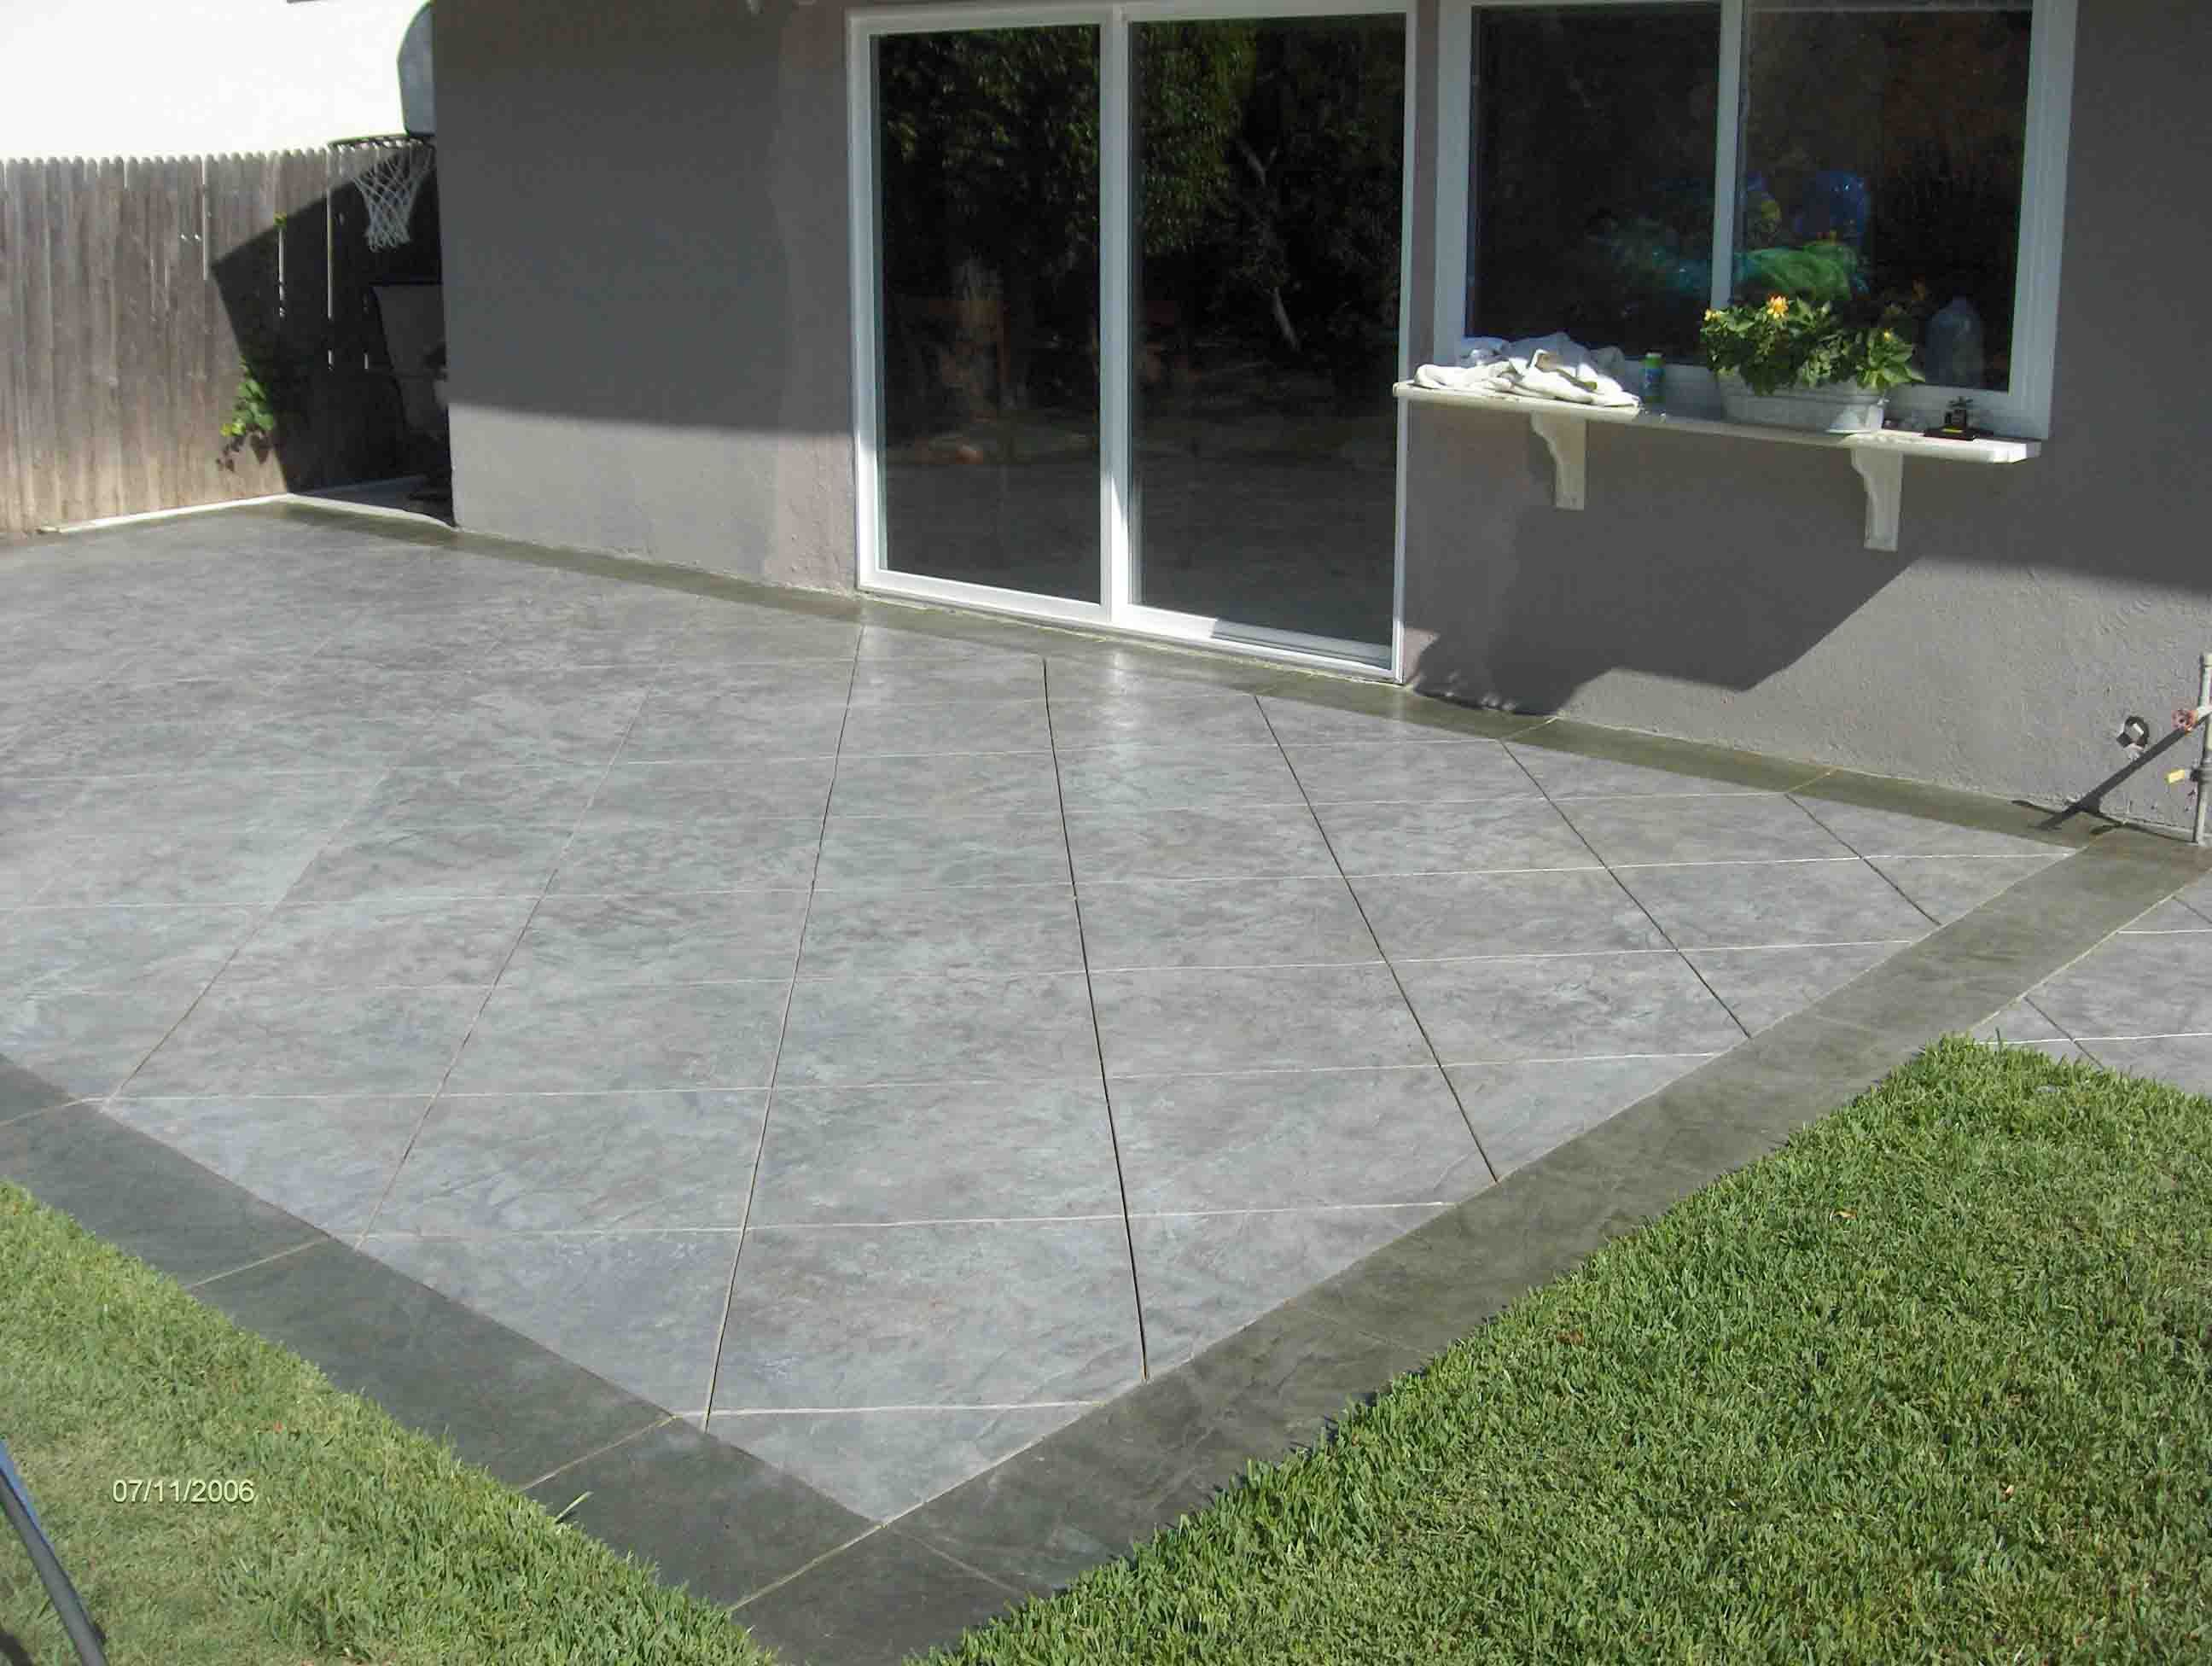 Concrete Patio Design Ideas wonderful stamped concrete patio ideas Patio Designs Concrete Concrete Patios Des Plaines Decorative Patio 3d